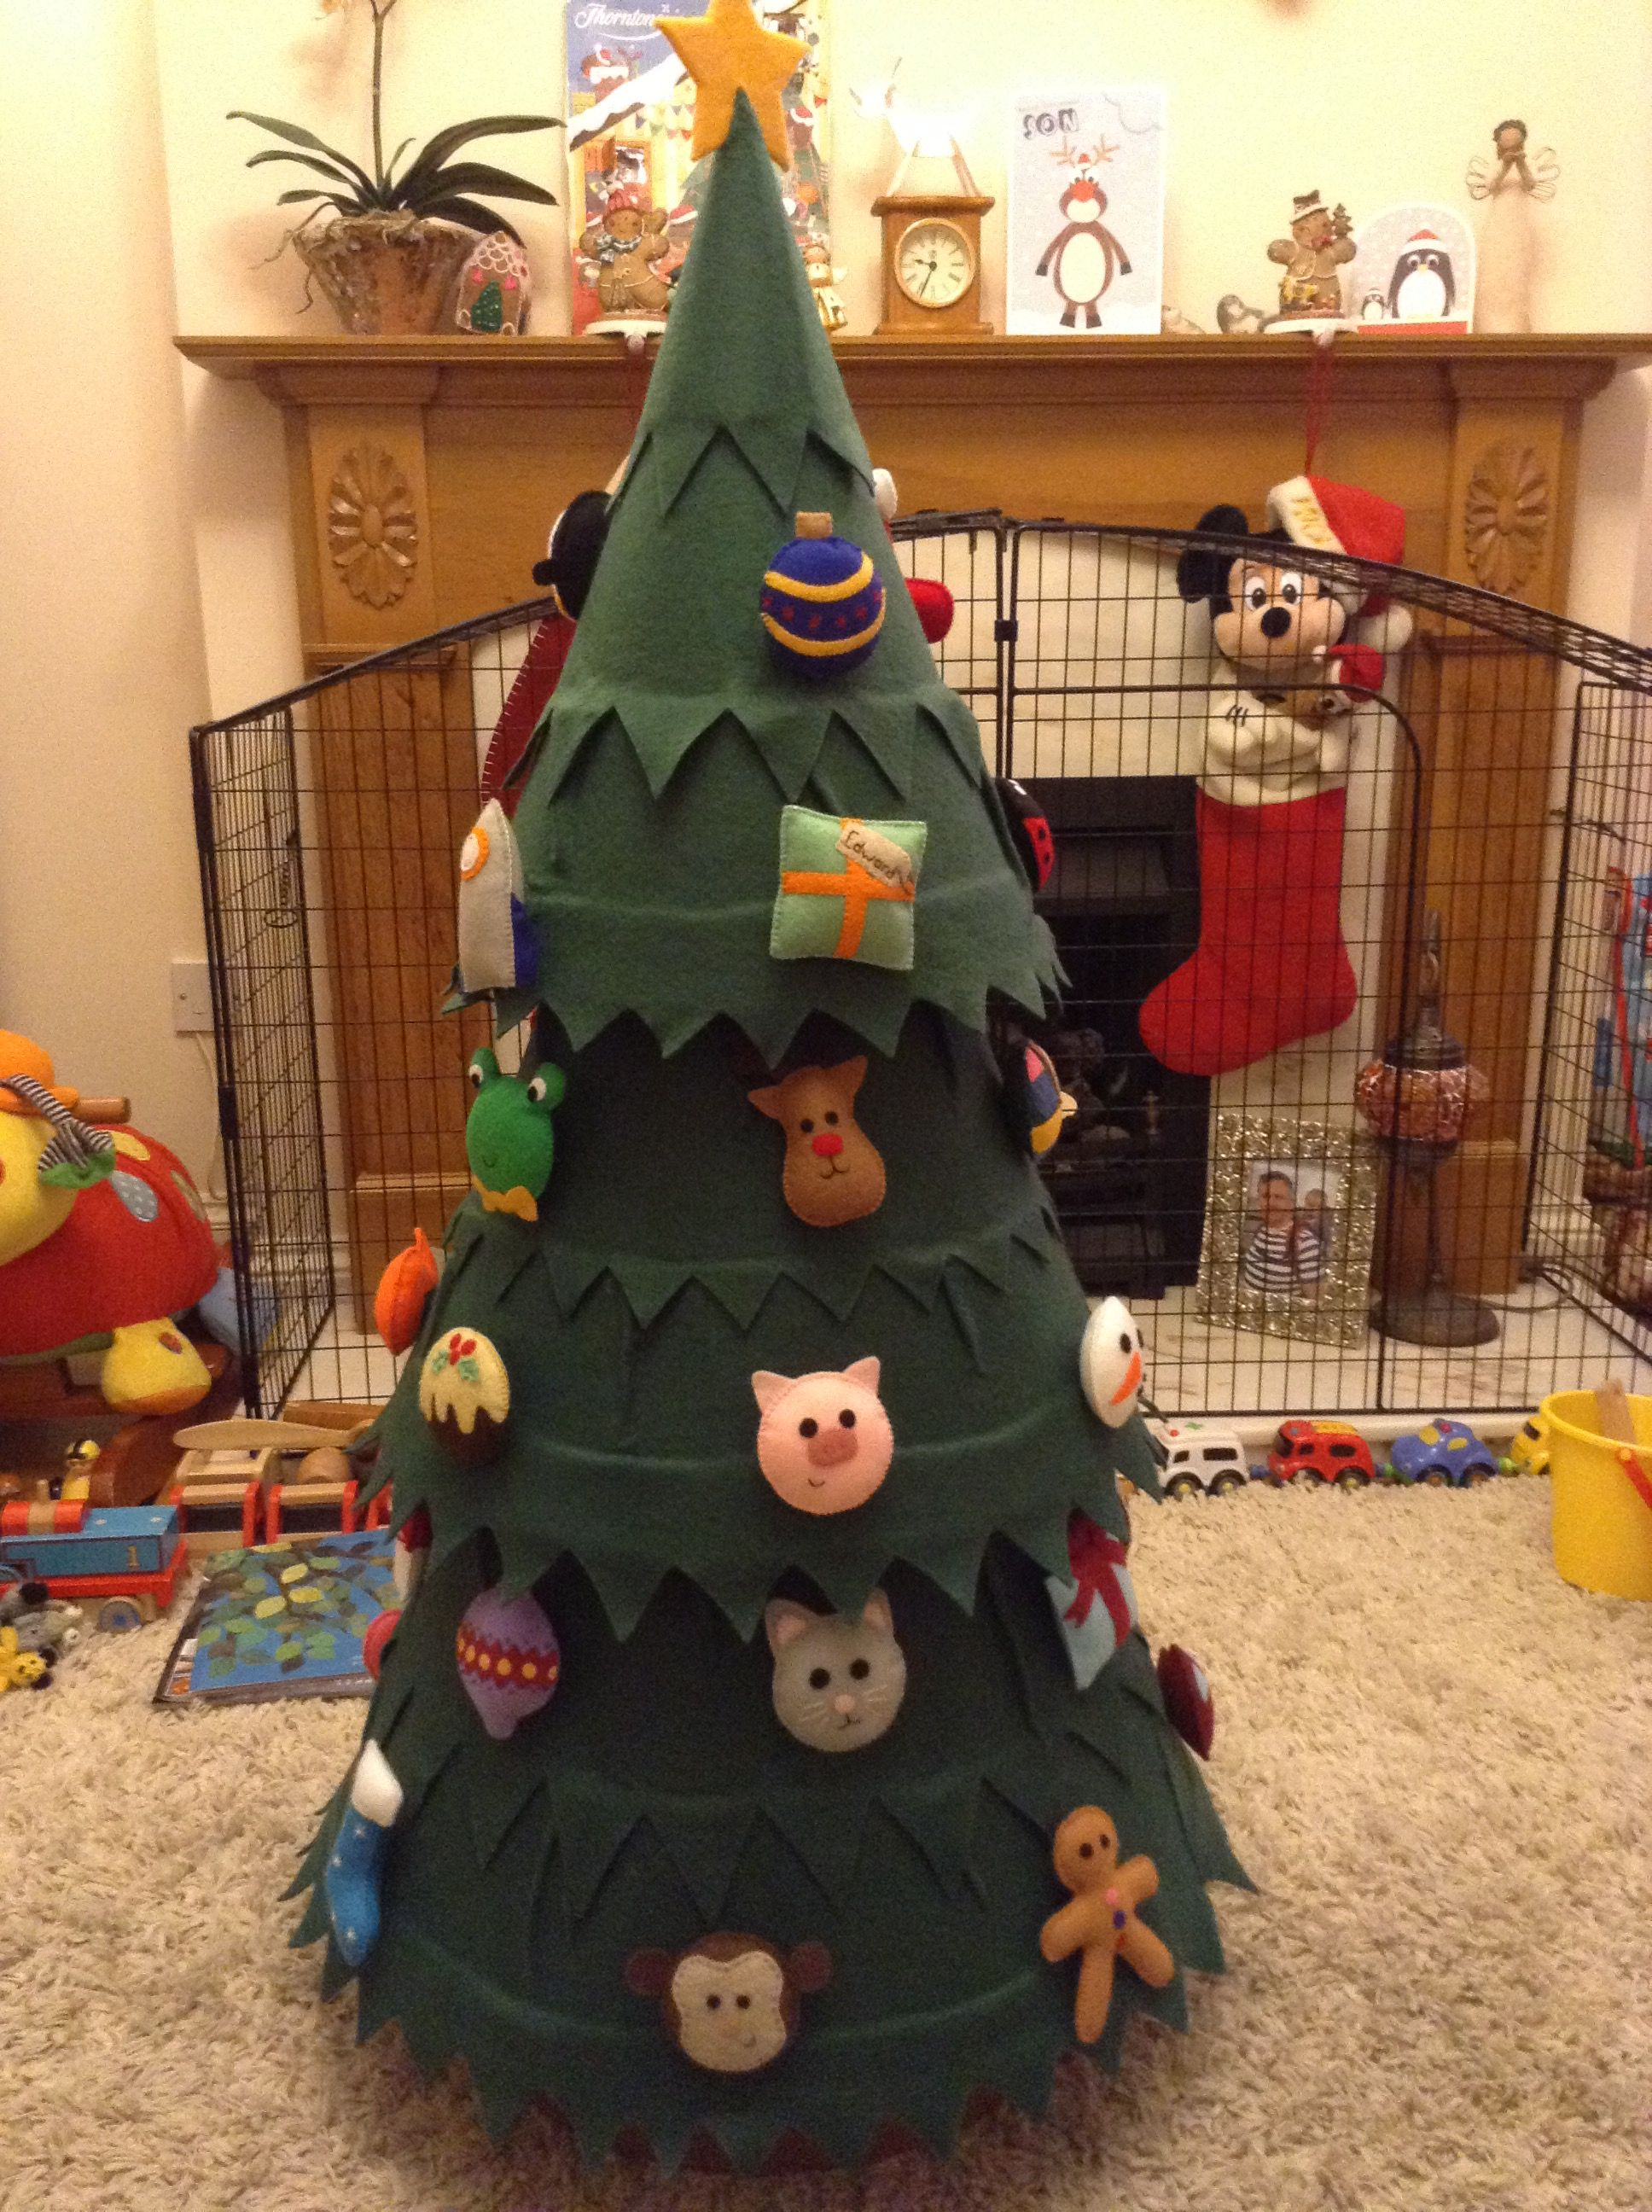 Felt Covered Christmas Tree With Felt Decorations For My Toddler